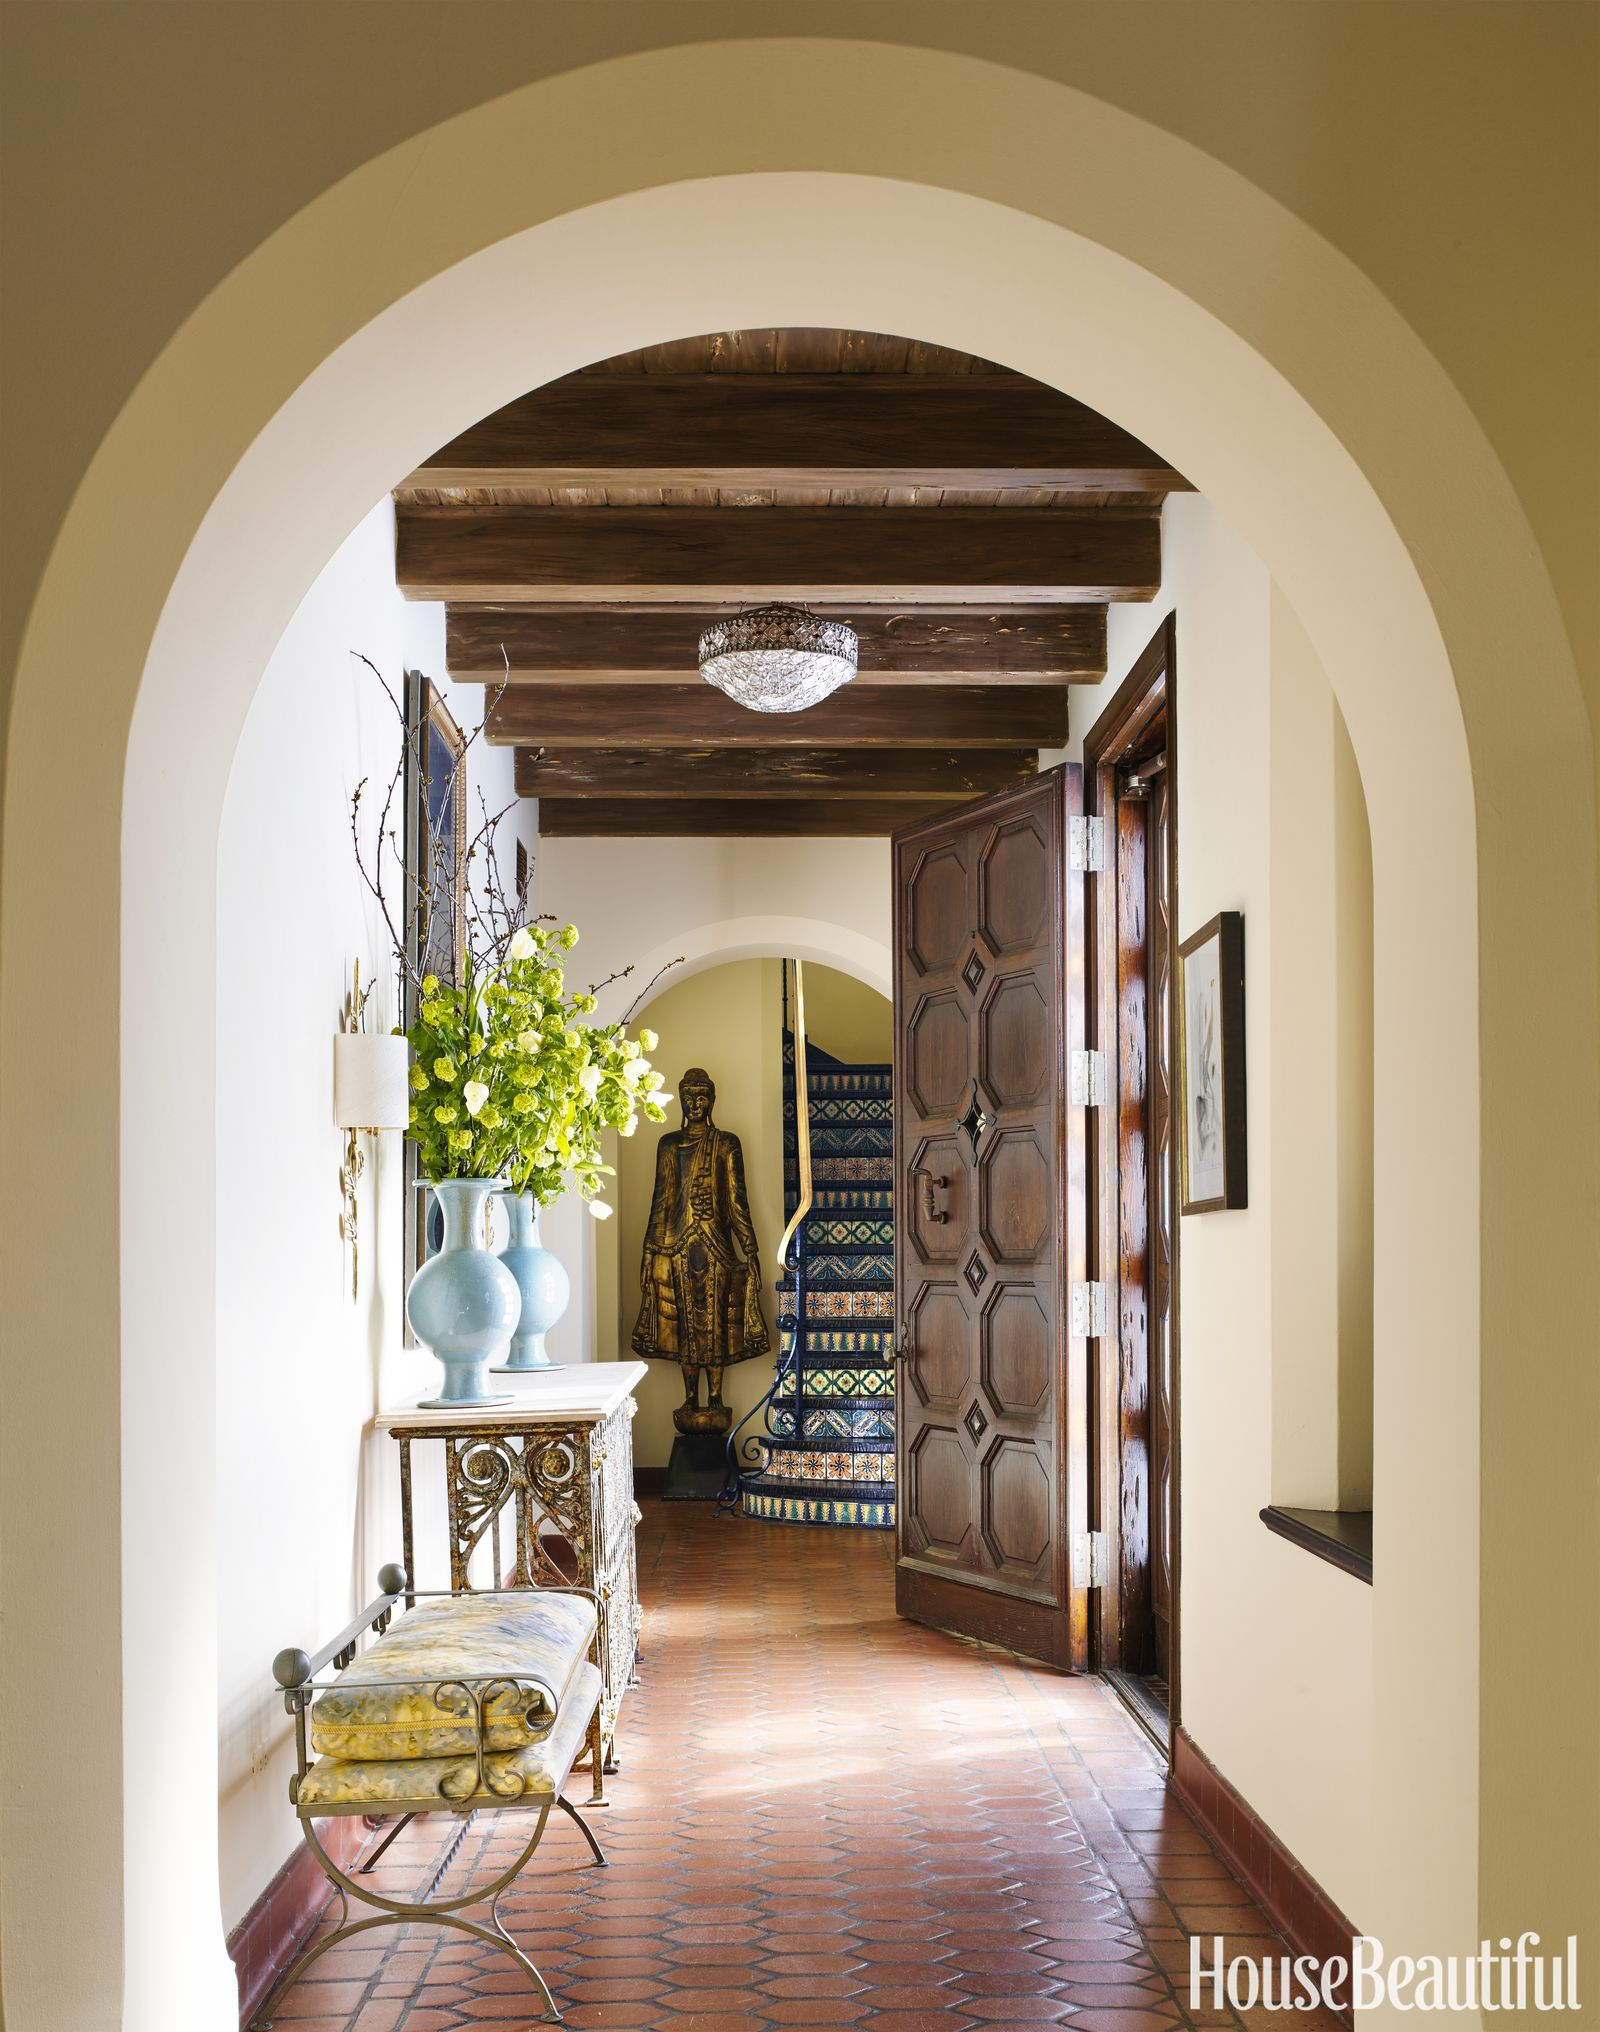 Home interior design arch this stunning home is the argument for decorating with cream